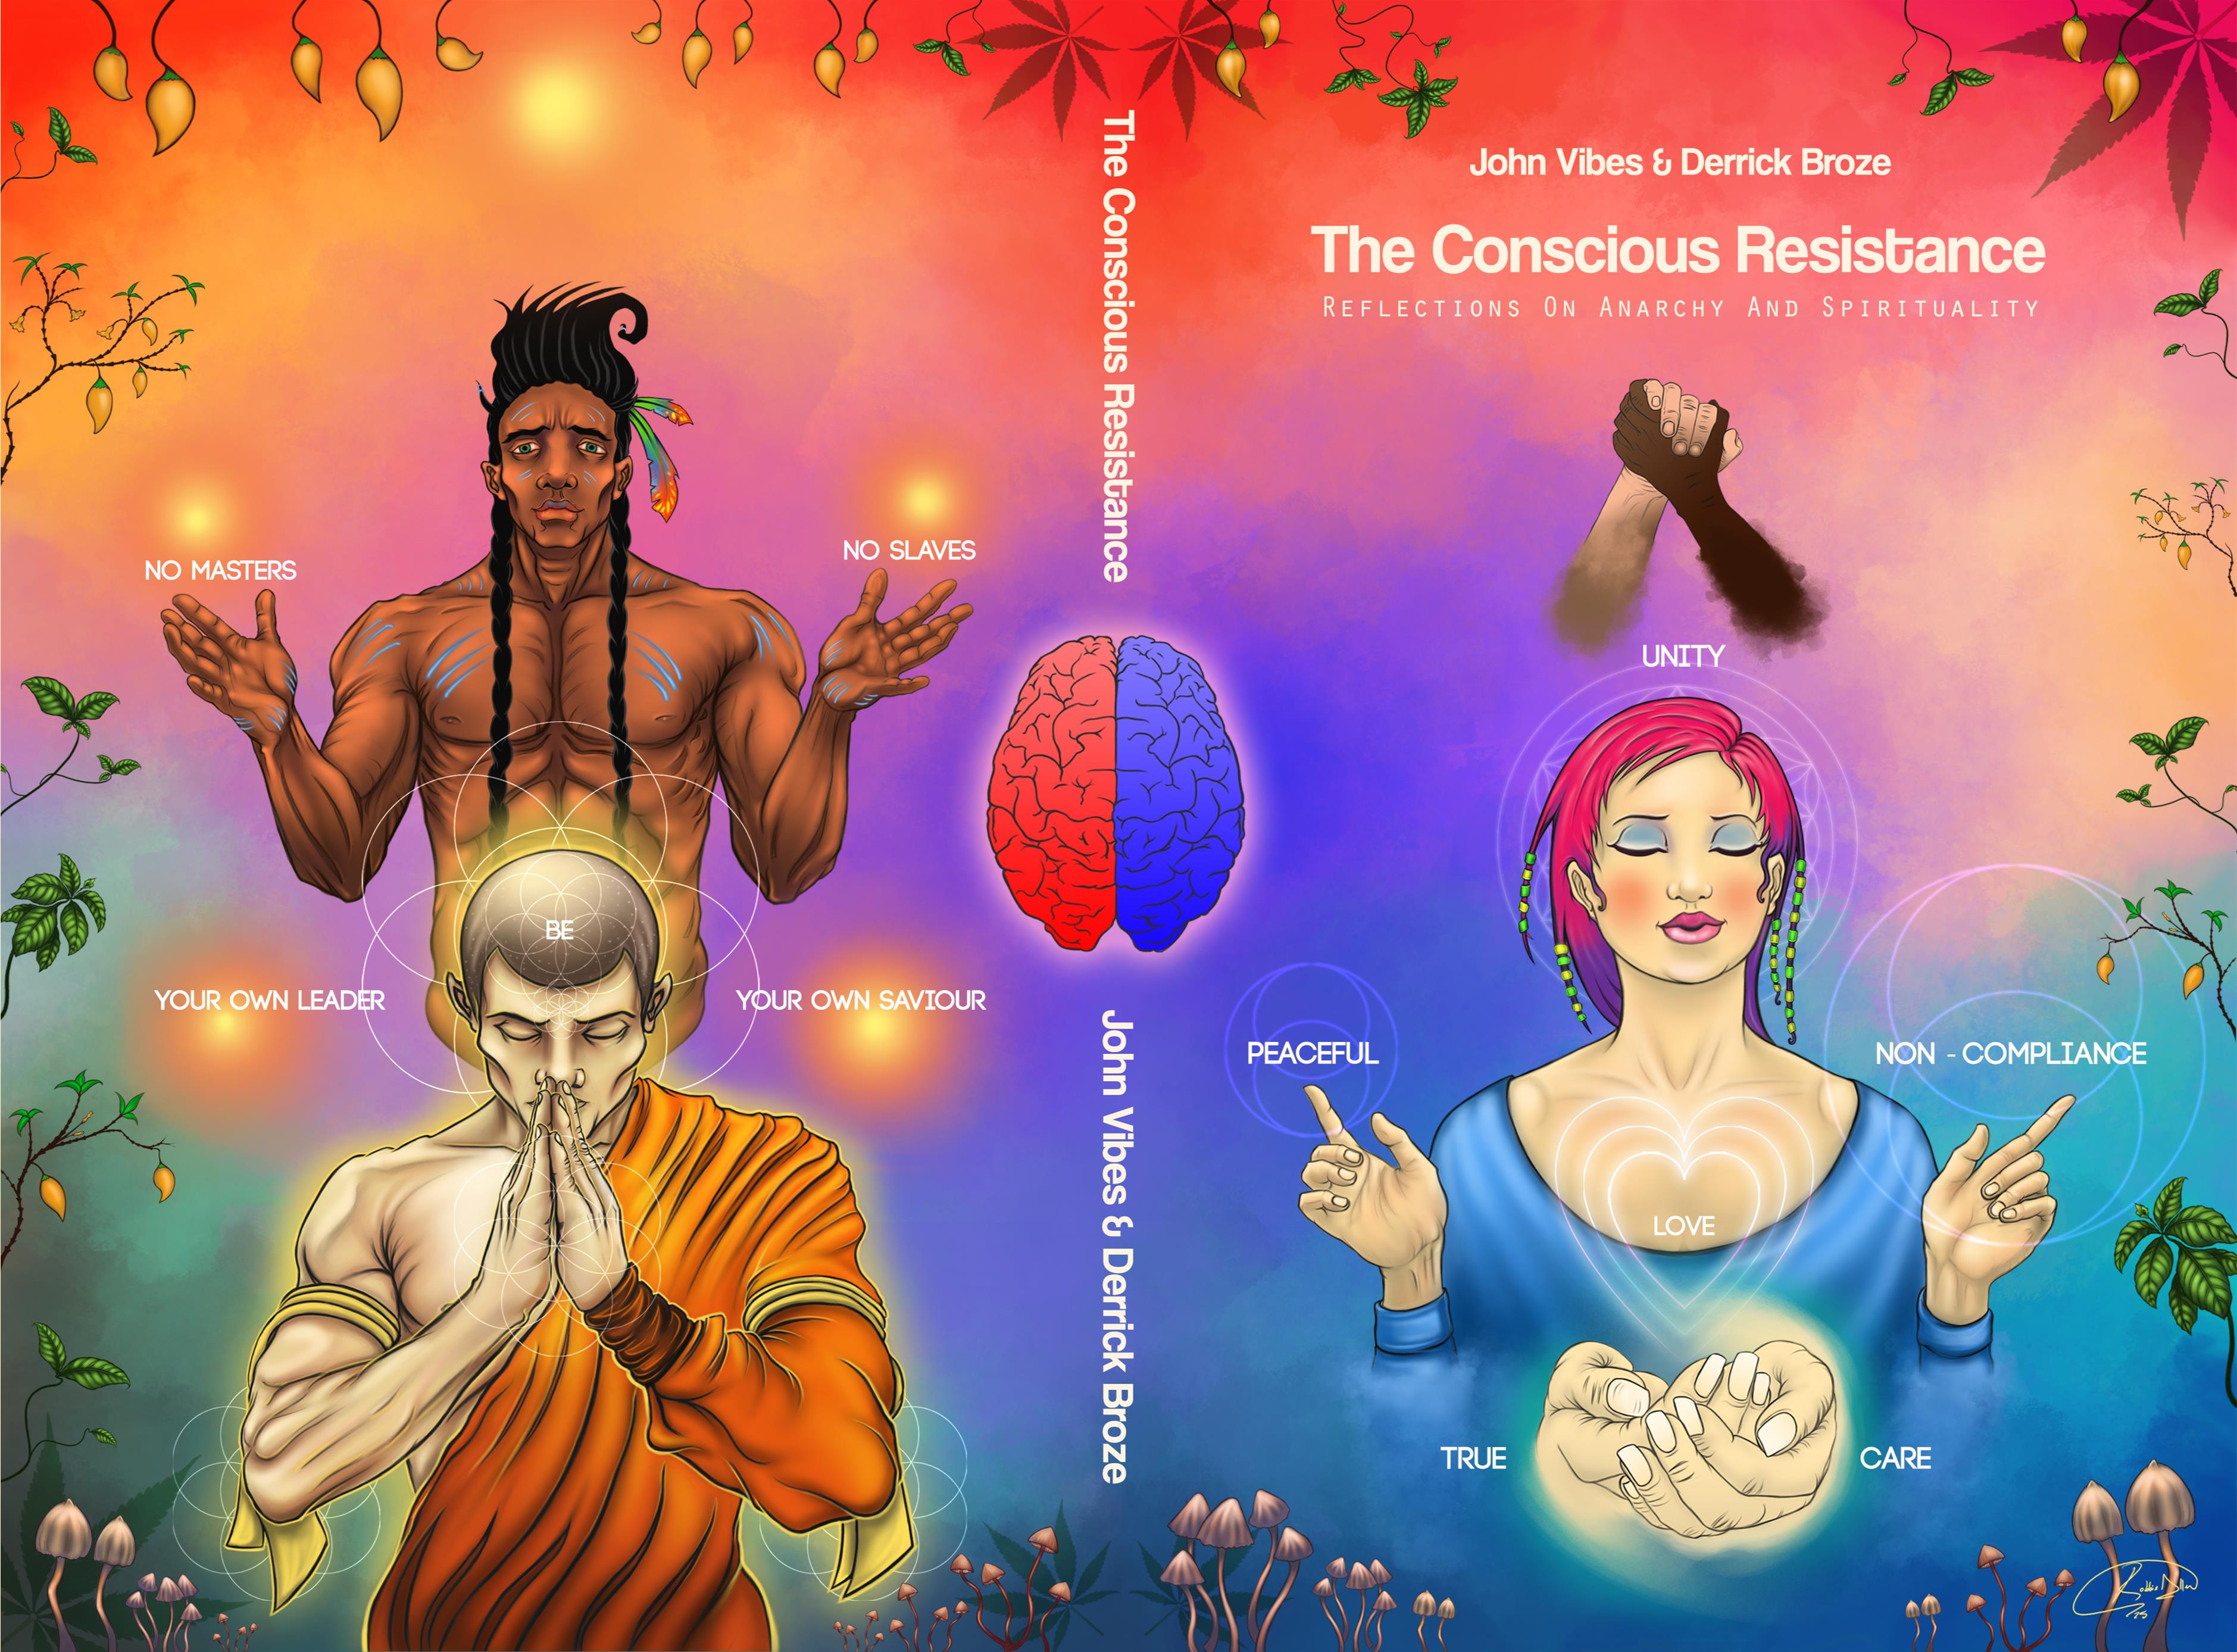 The Conscious Resistance: Reflections on Anarchy & Spirituality (Healing Cover) cover image